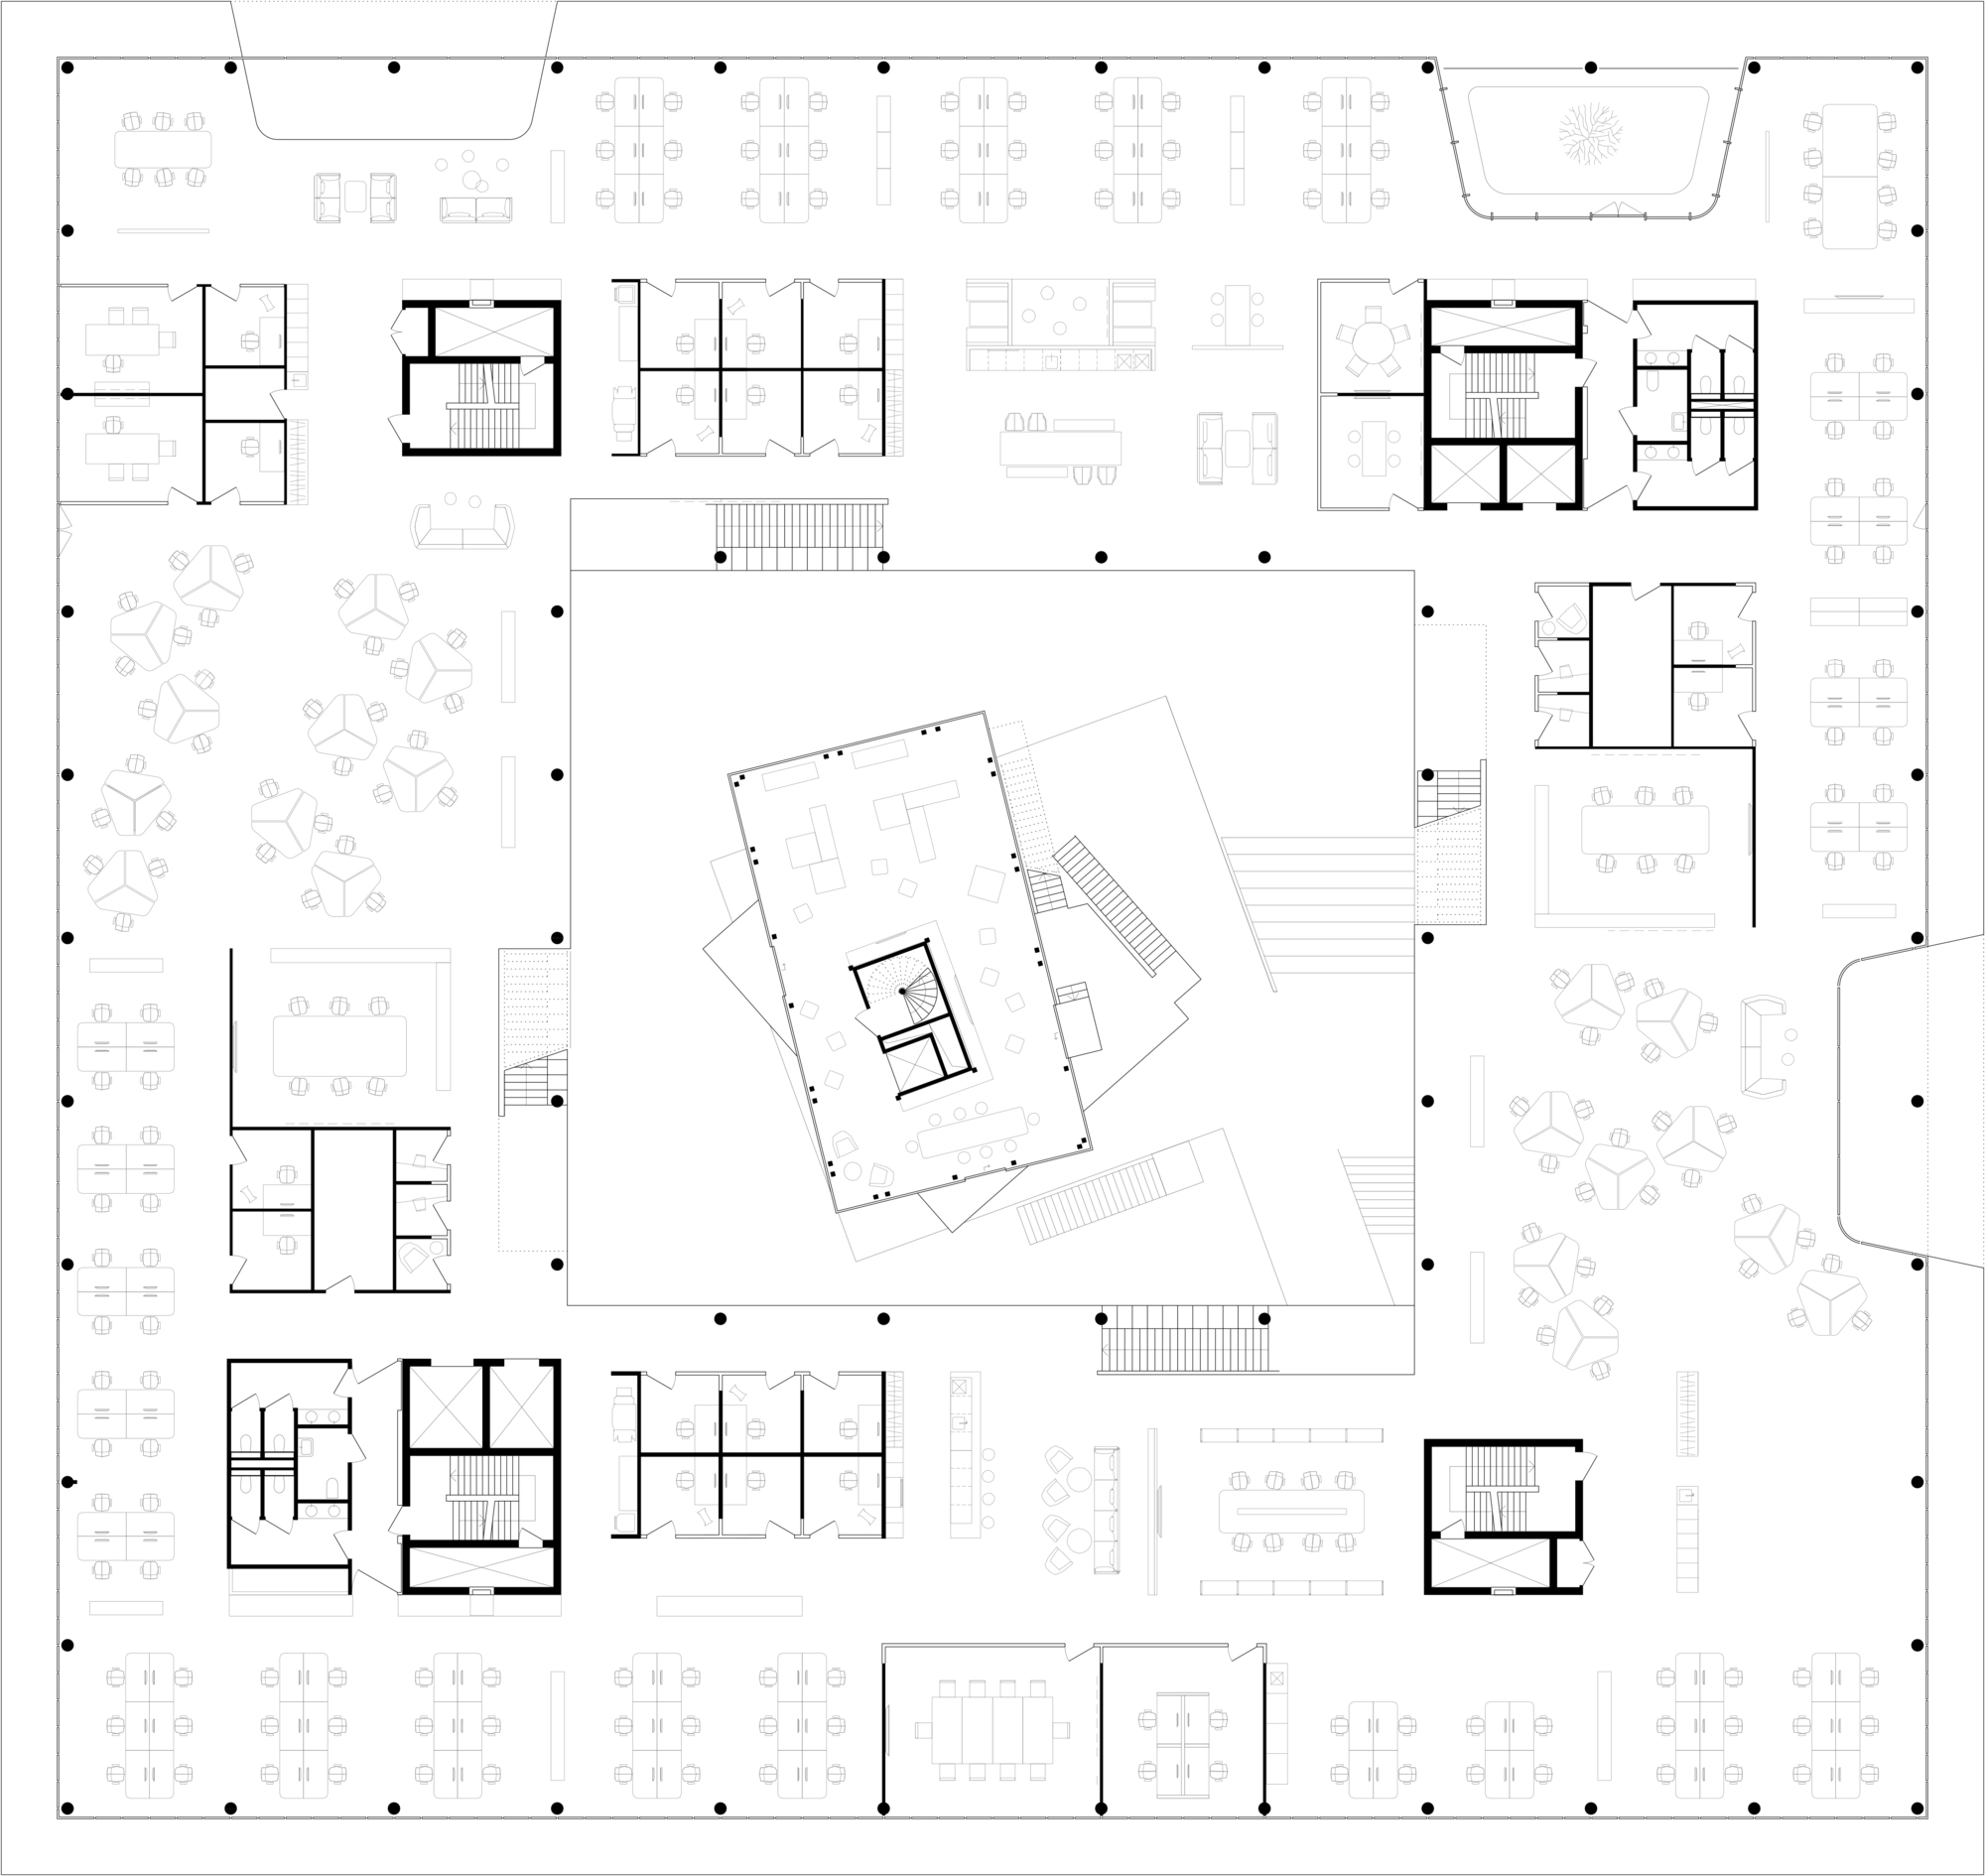 9_Powerhouse_Company_ASICS_First_Floor_Plan_Image_by_Powerhouse_Company.jpg